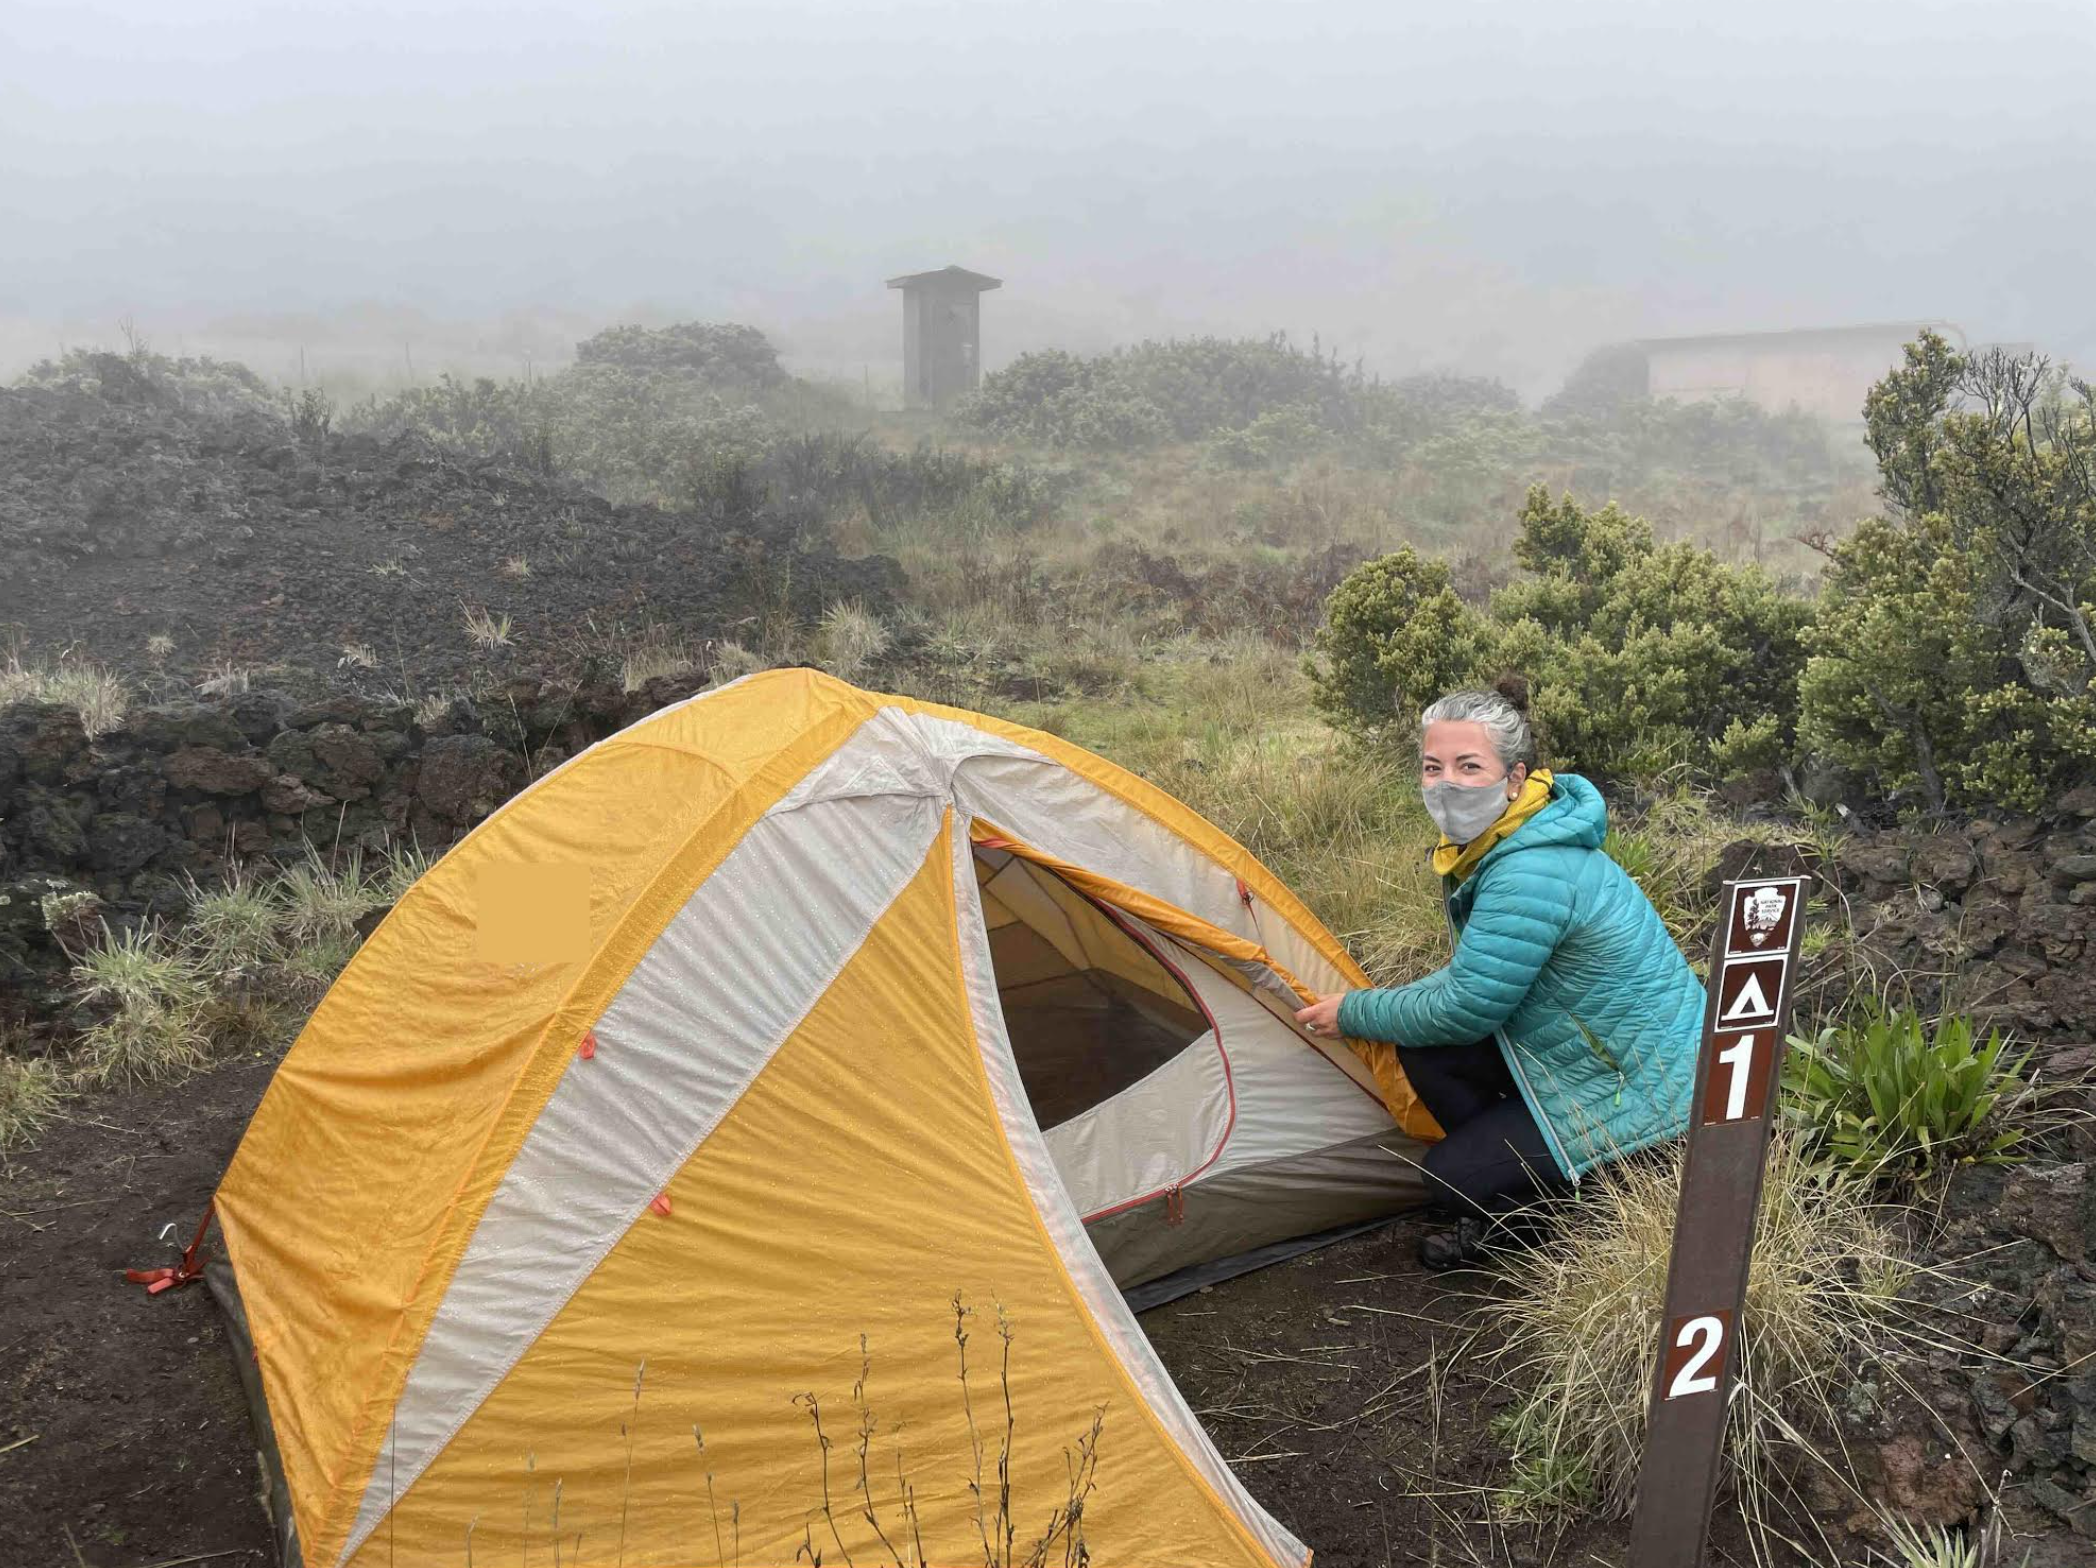 New Online Reservation System for Haleakalā Crater Wilderness Campsites